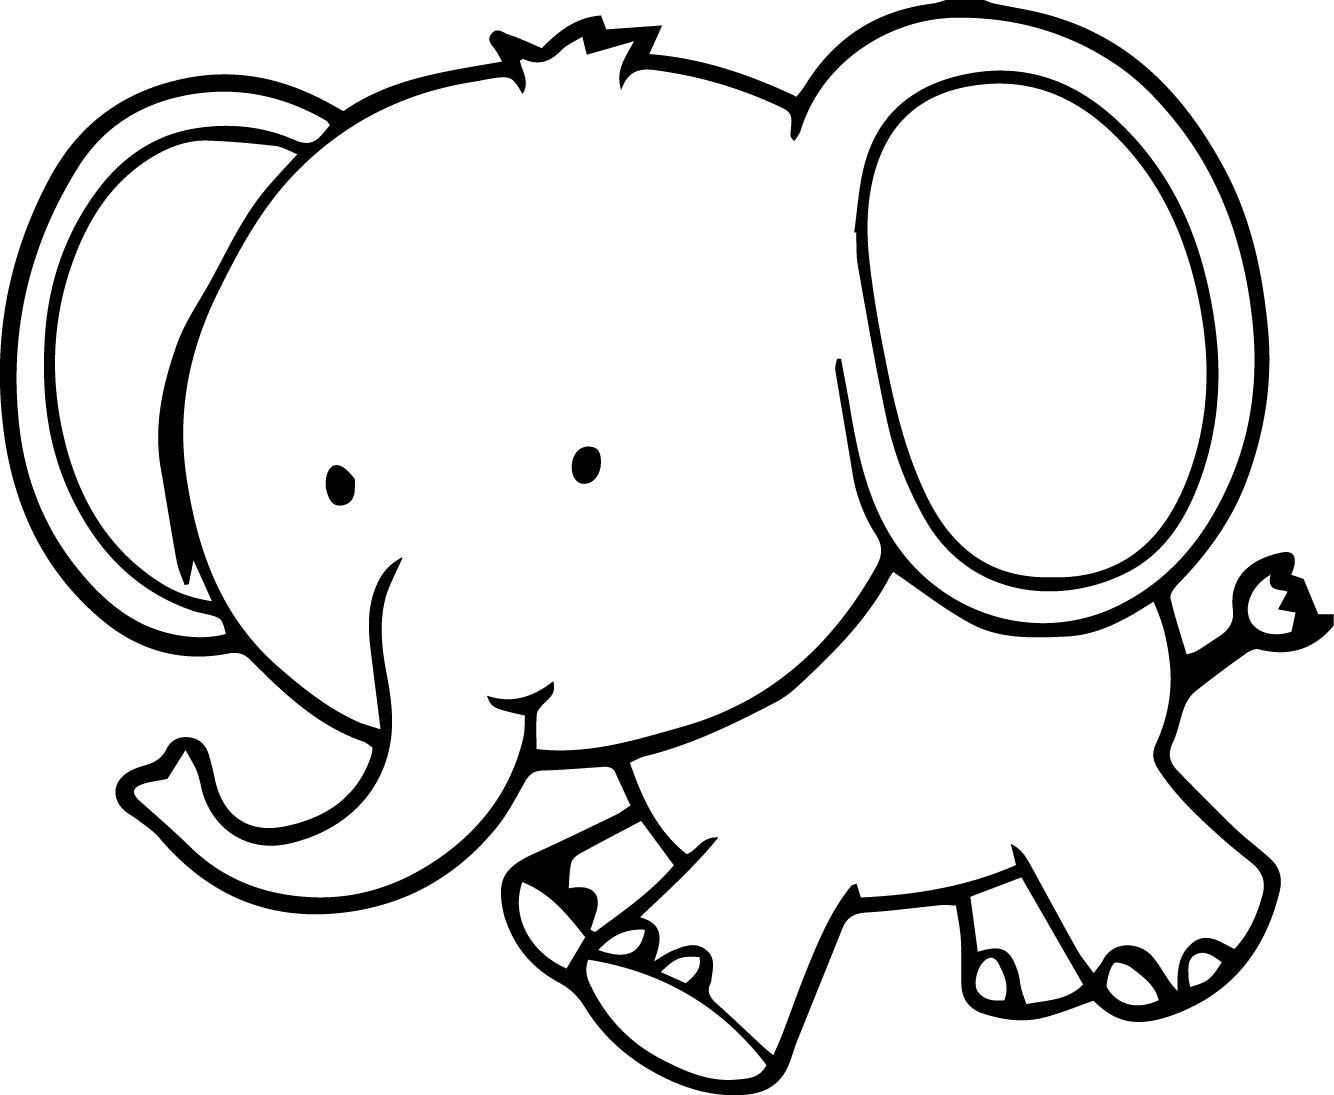 1334x1095 Download Coloring Pages. Elephant Coloring Page Elephant Coloring